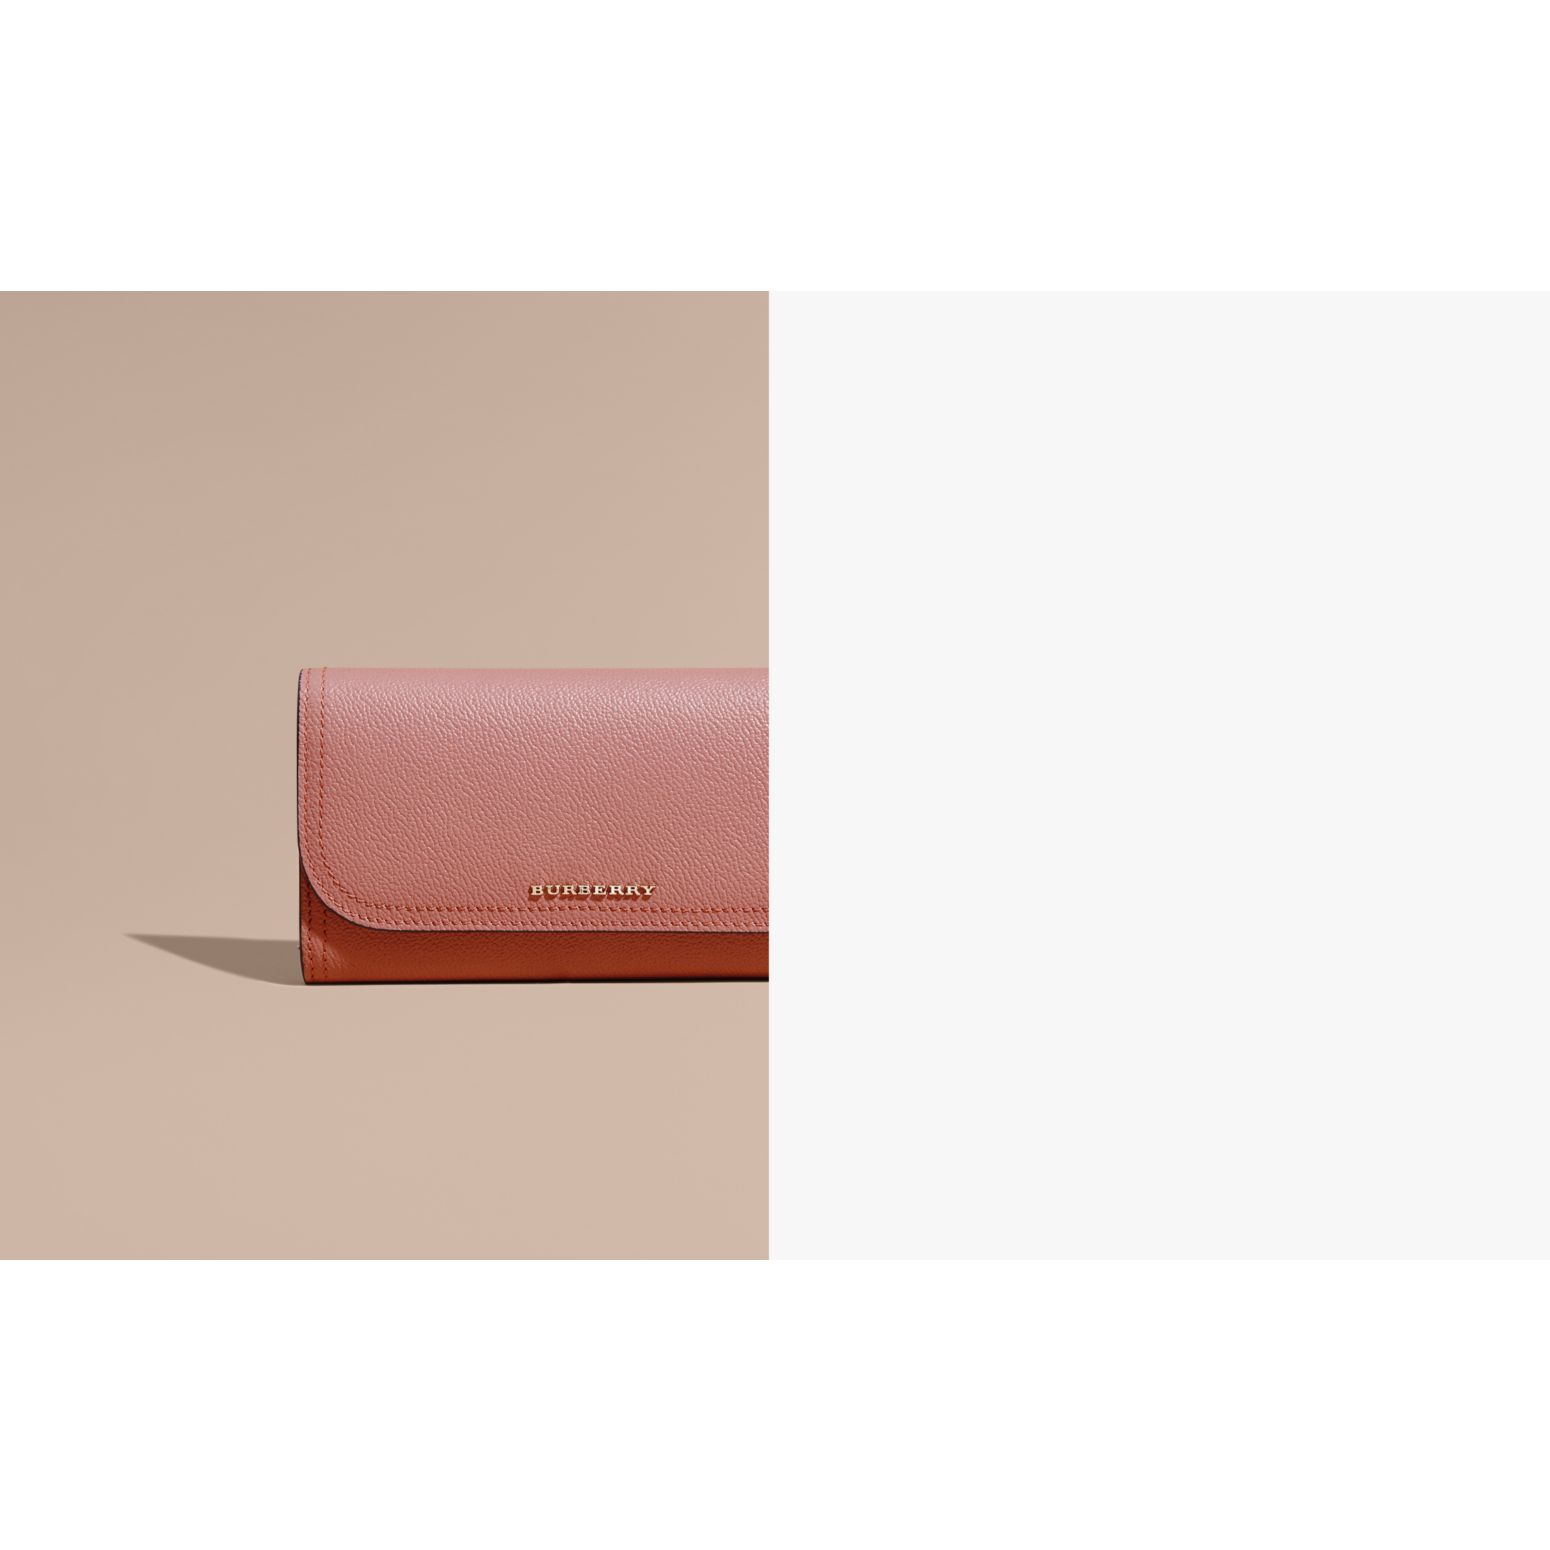 Grainy Leather Slim Continental Wallet in Dusty Pink - Women | Burberry Singapore - gallery image 2